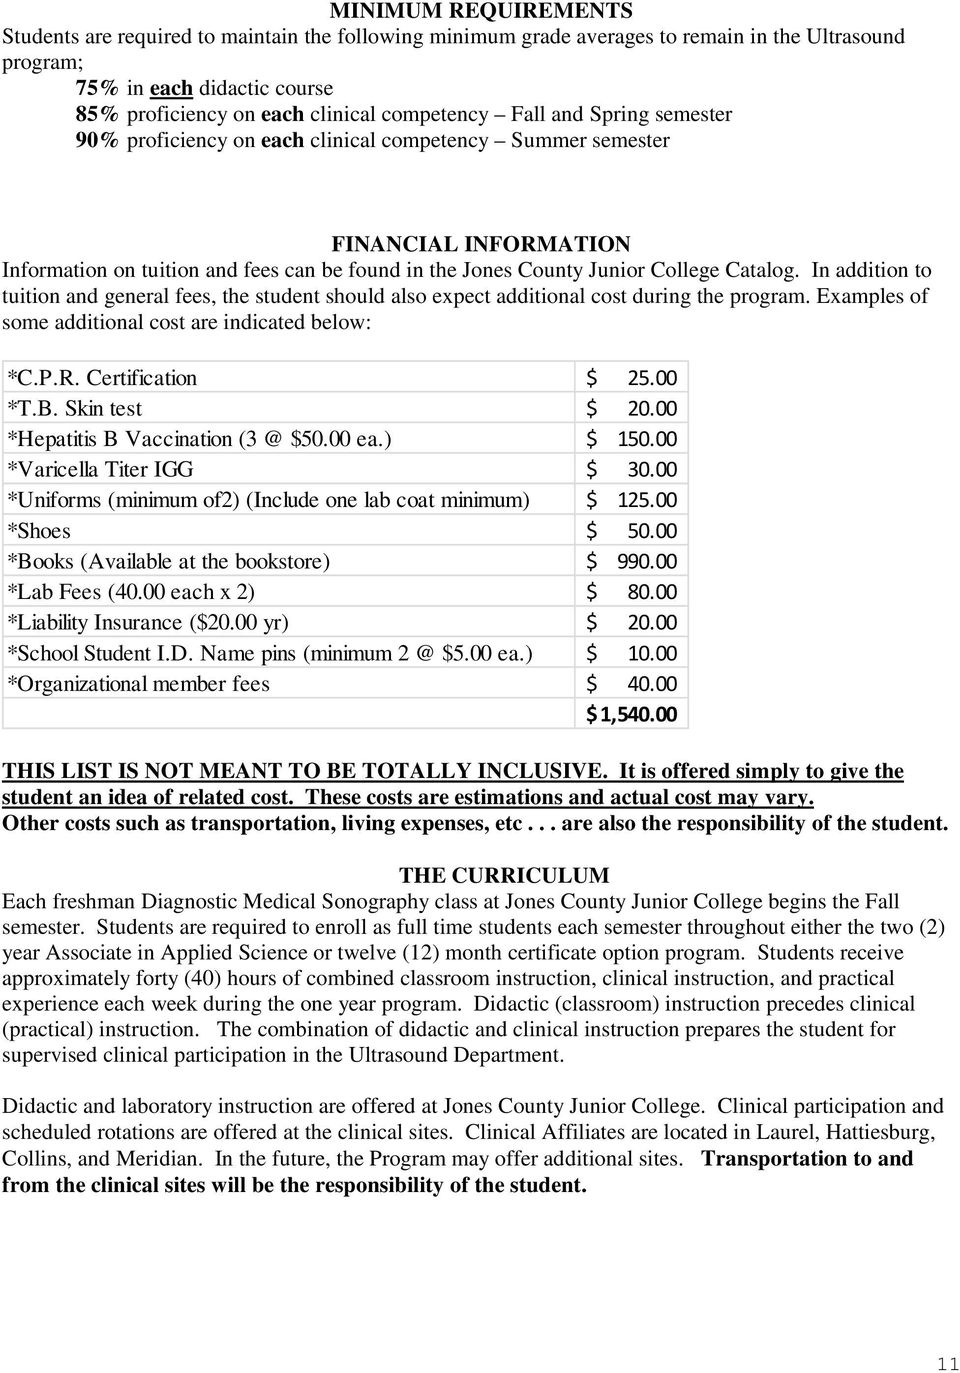 Catalog. In addition to tuition and general fees, the student should also expect additional cost during the program. Examples of some additional cost are indicated below: *C.P.R. Certification $ 25.